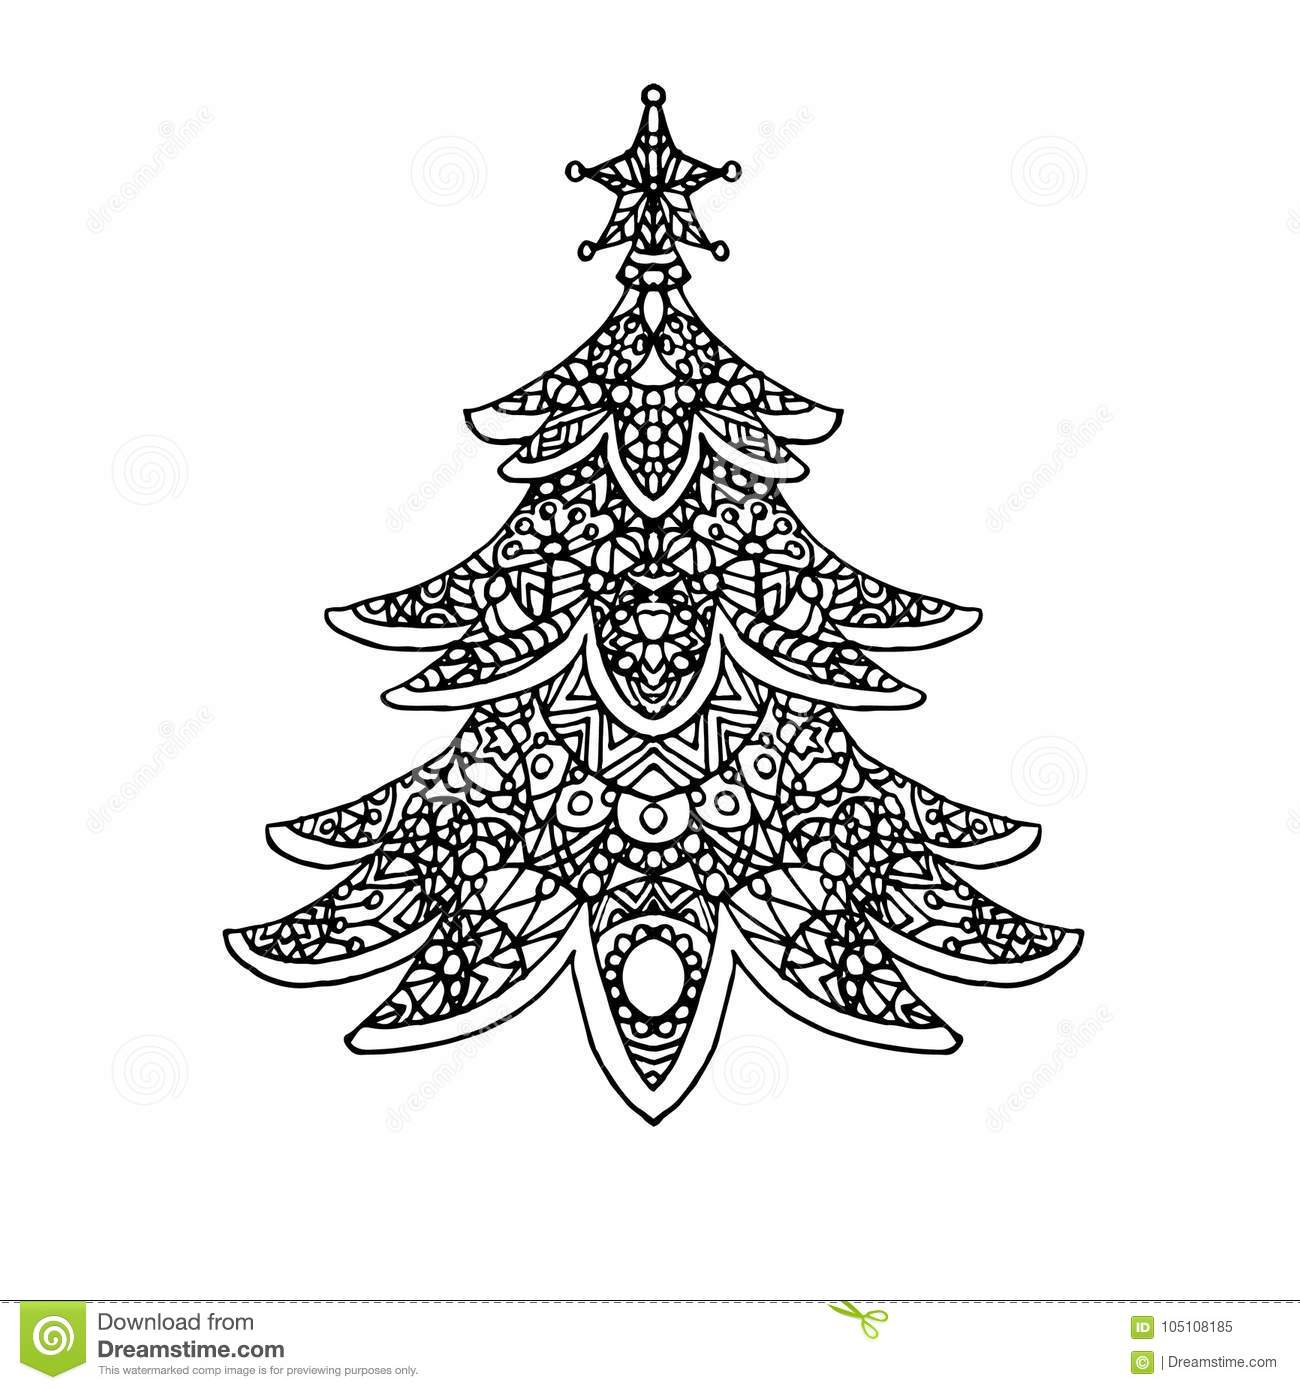 Christmas Tree Coloring Page Stock Illustration - Illustration of ...